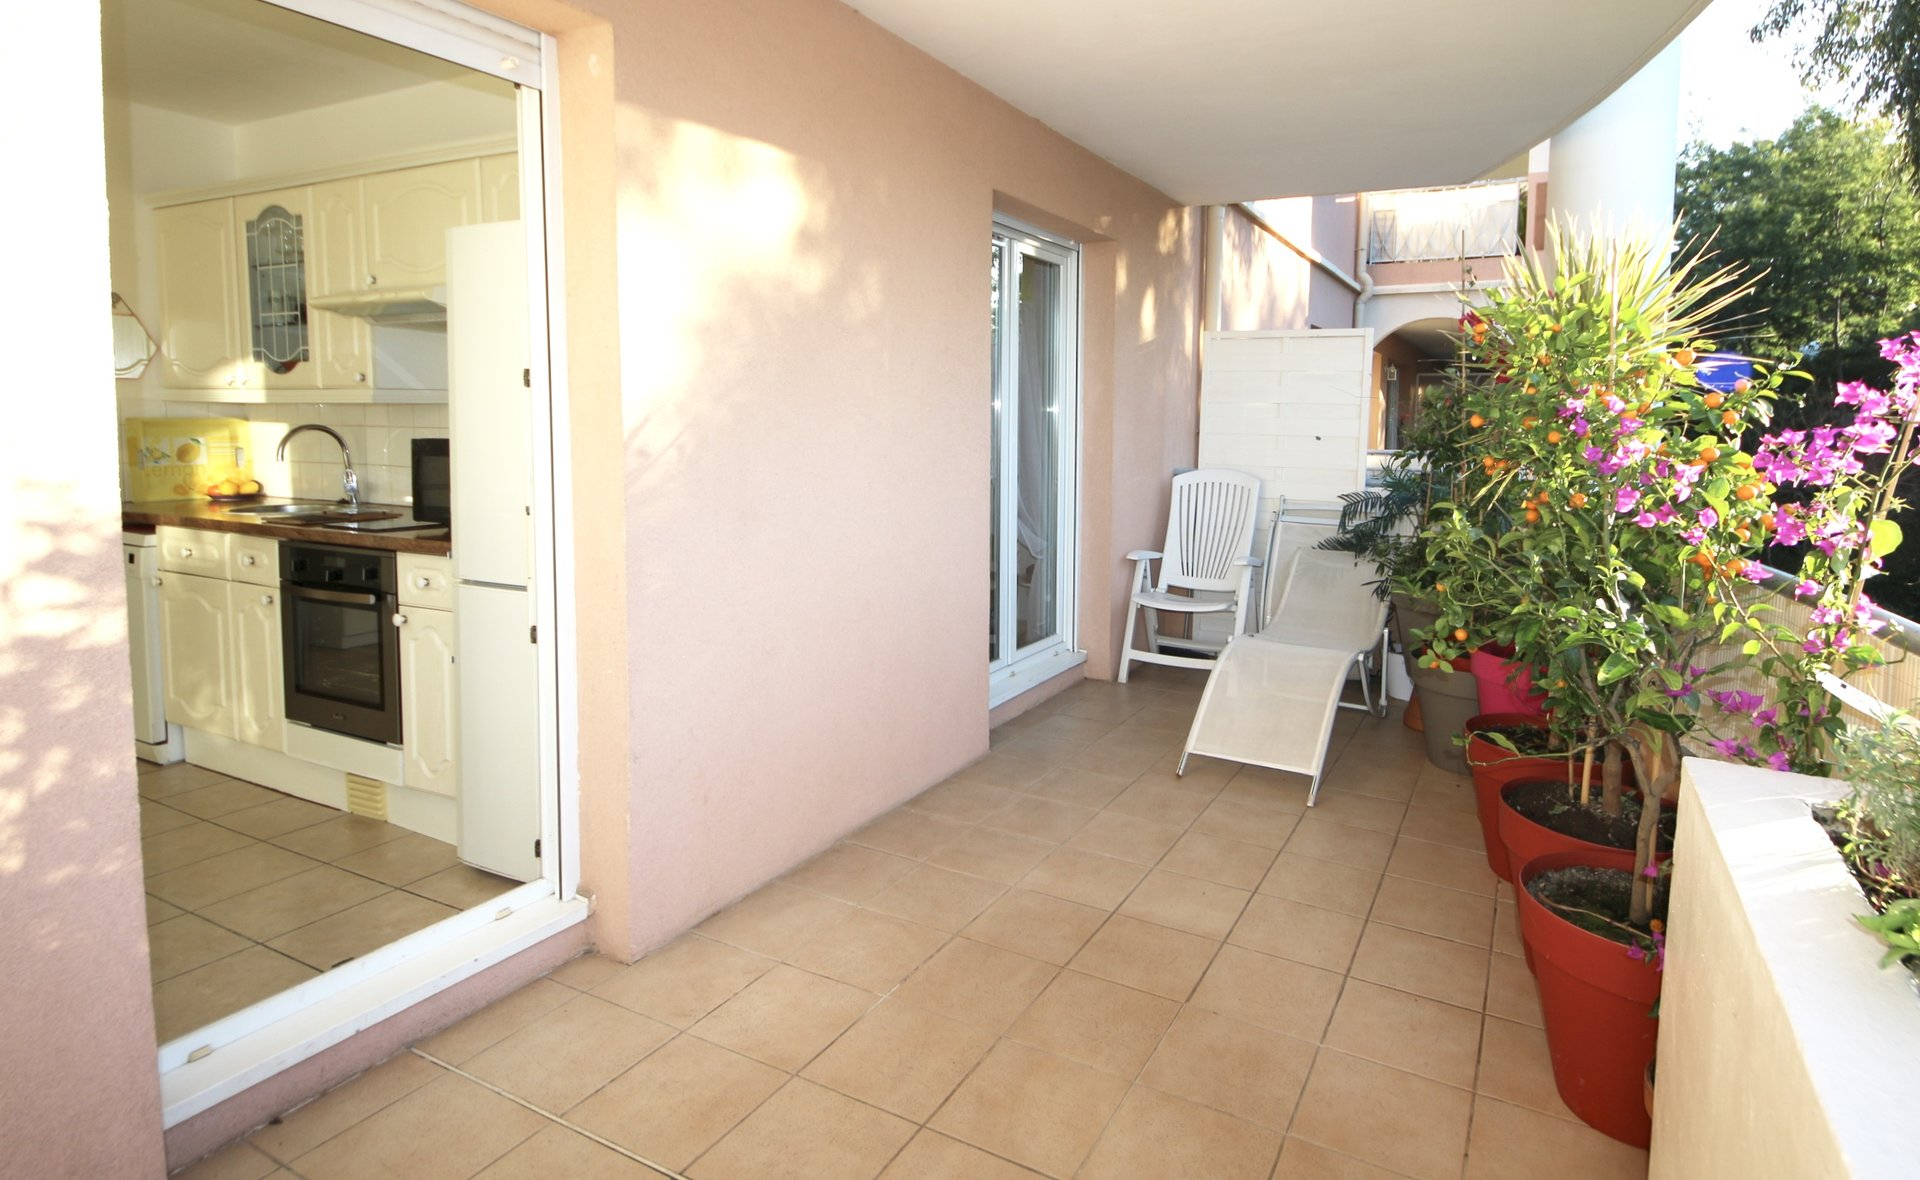 Cannes Croix des Gardes, 1 bedroom apartment with terrace in nice residence